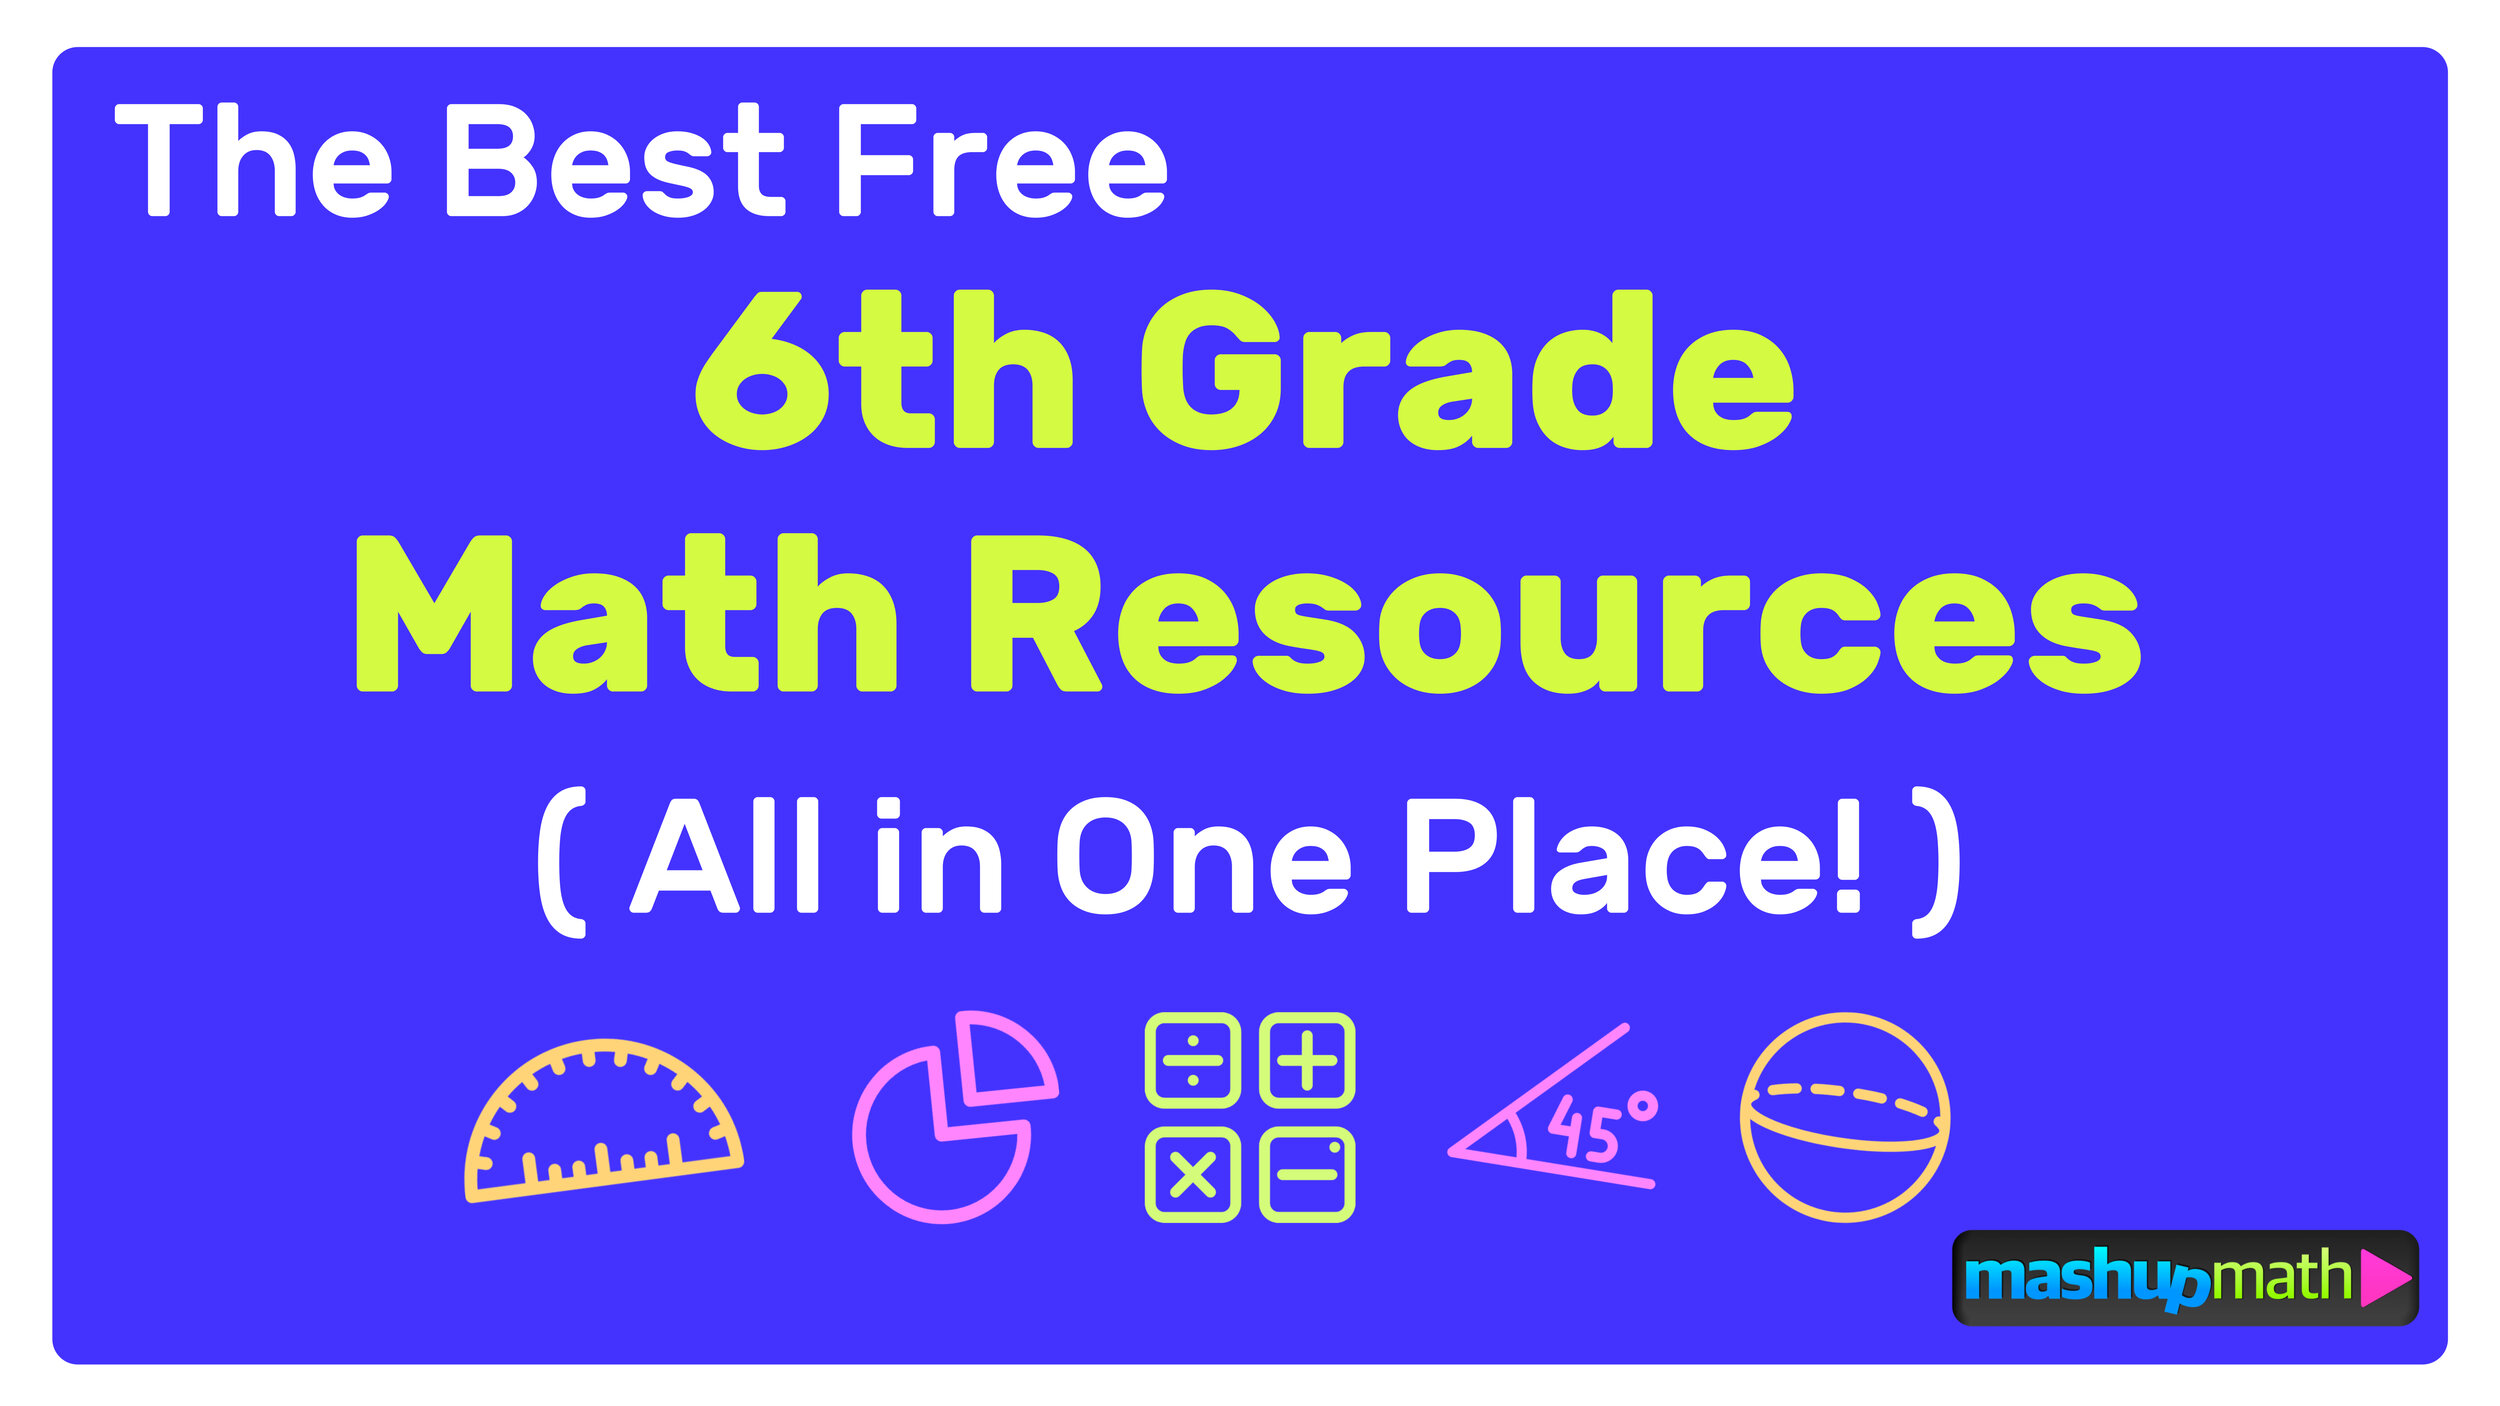 The Best Free 6th Grade Math Resources: Complete List! — Mashup Math [ 844 x 1500 Pixel ]